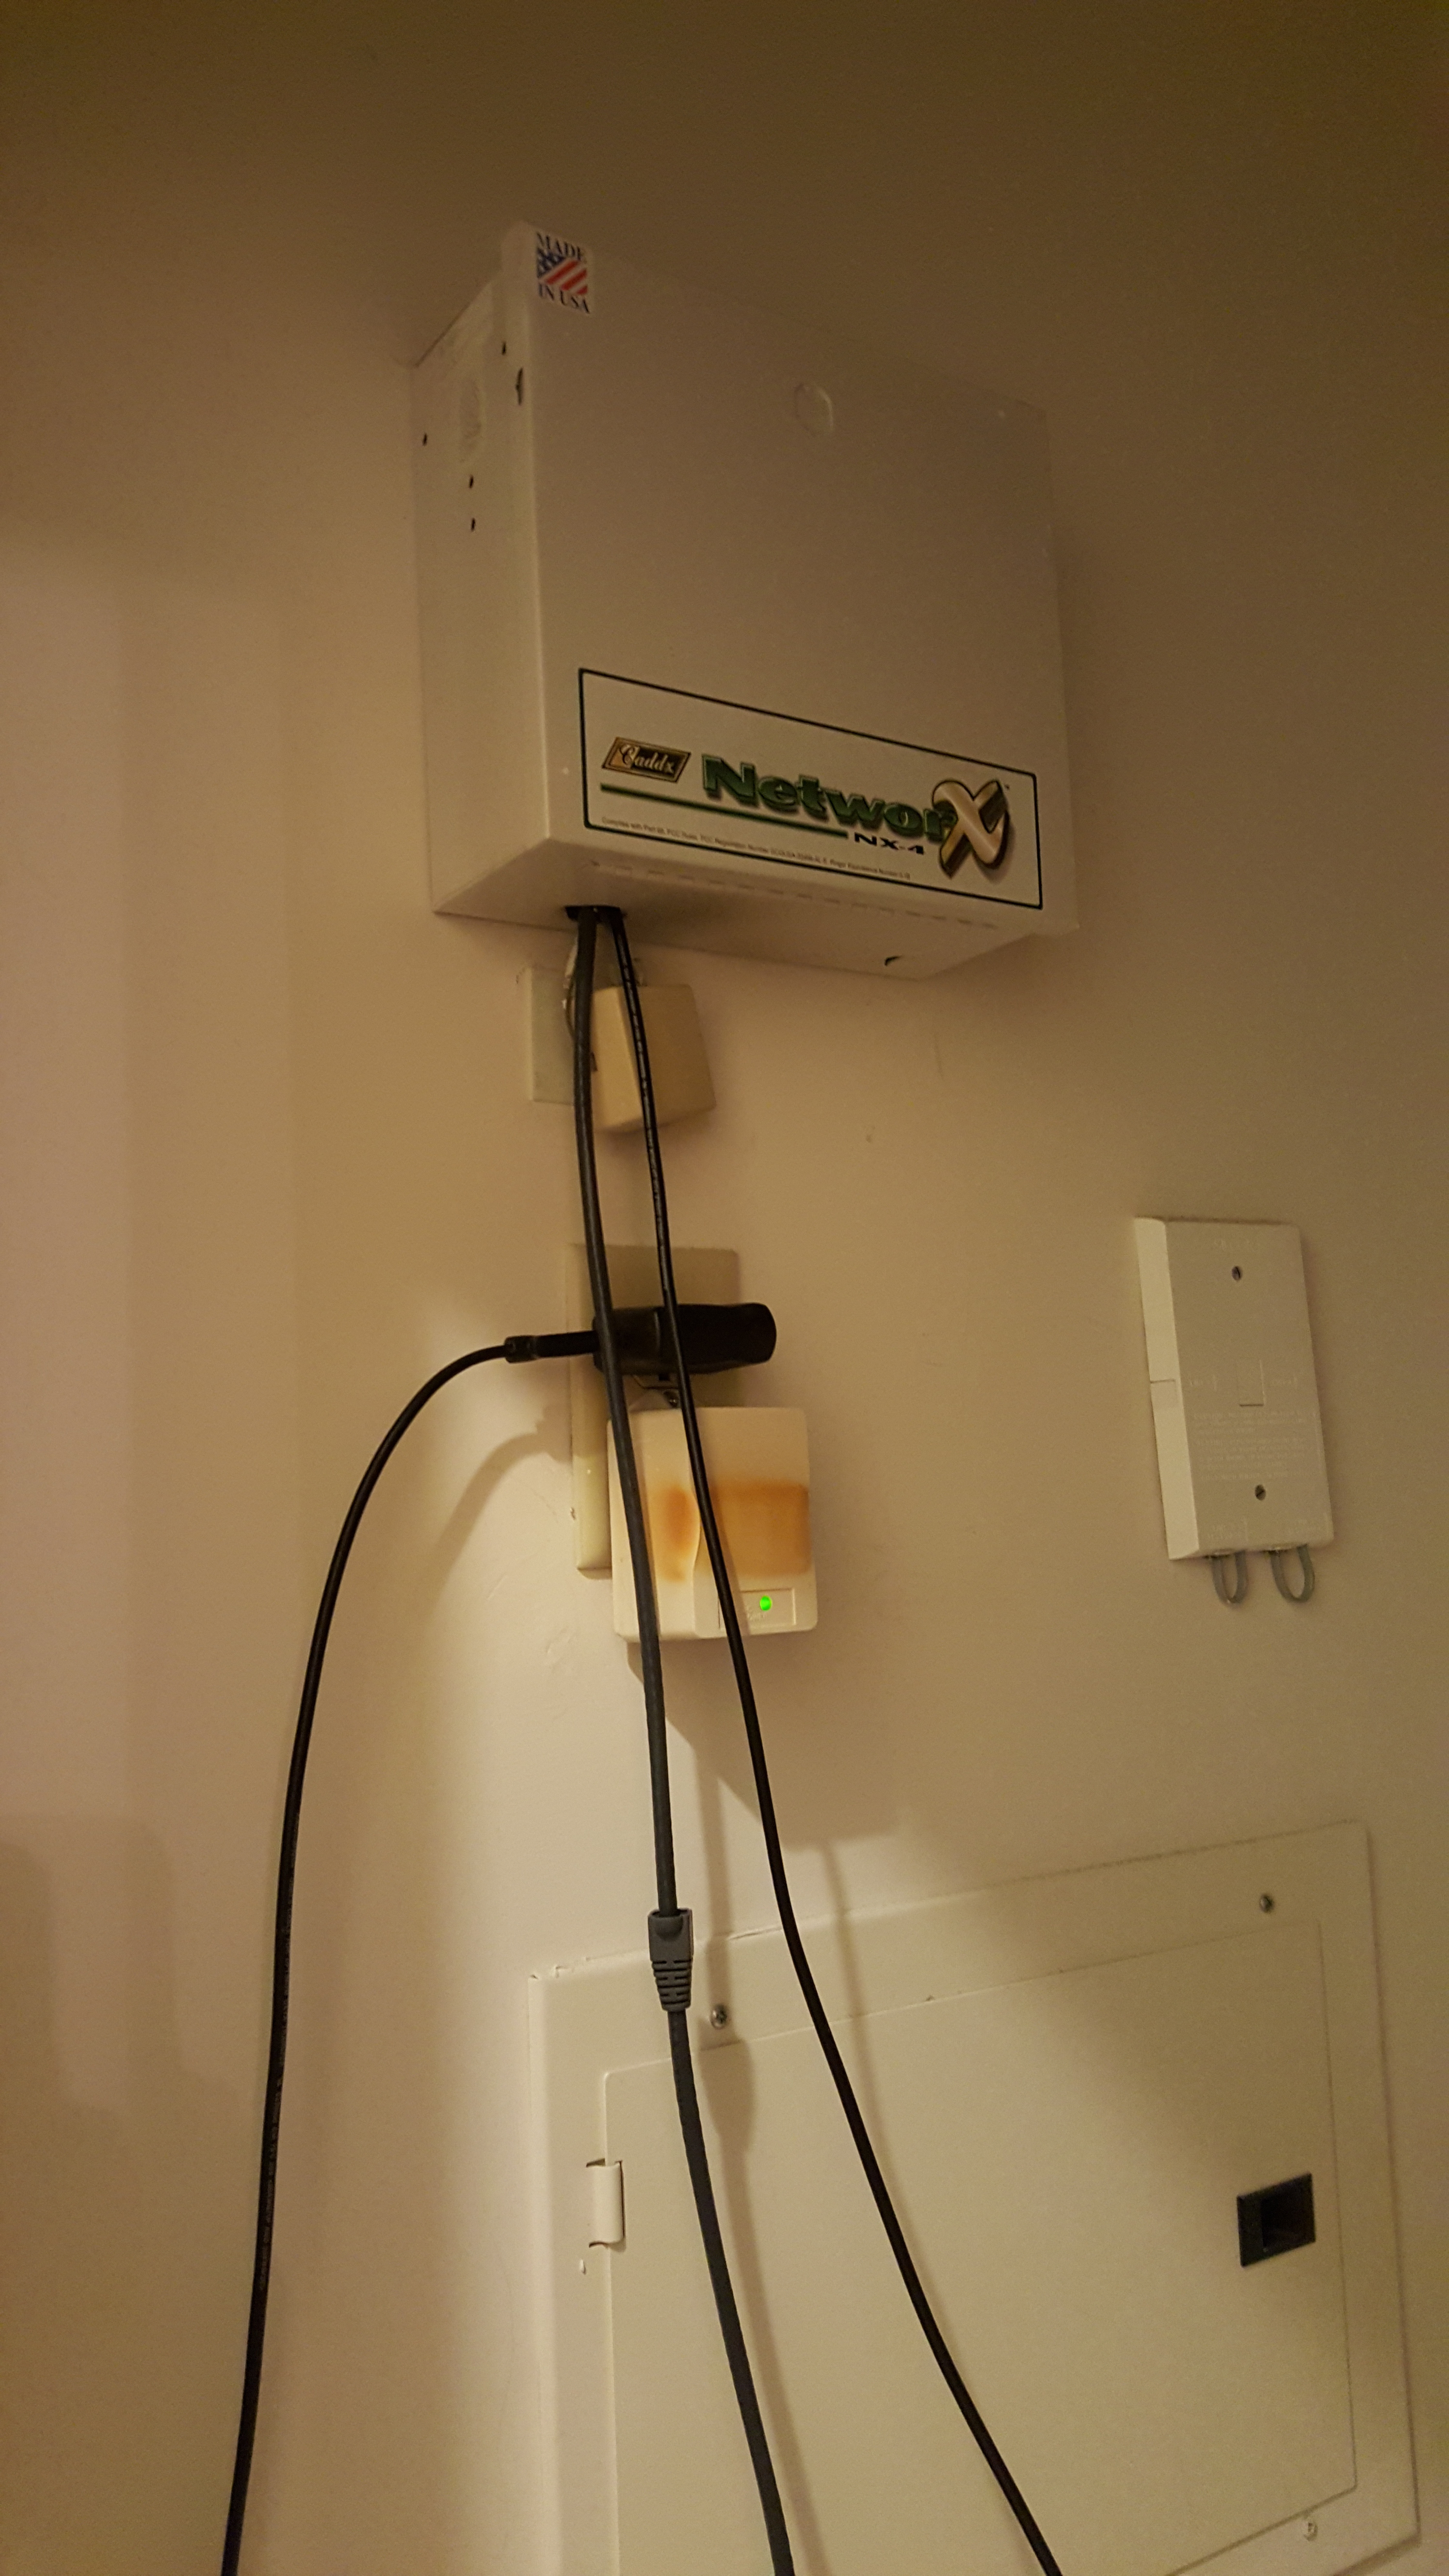 Raspberry pi security system jason antmans blog photograph of alarm enclosure closed showing wires to rpi rubansaba